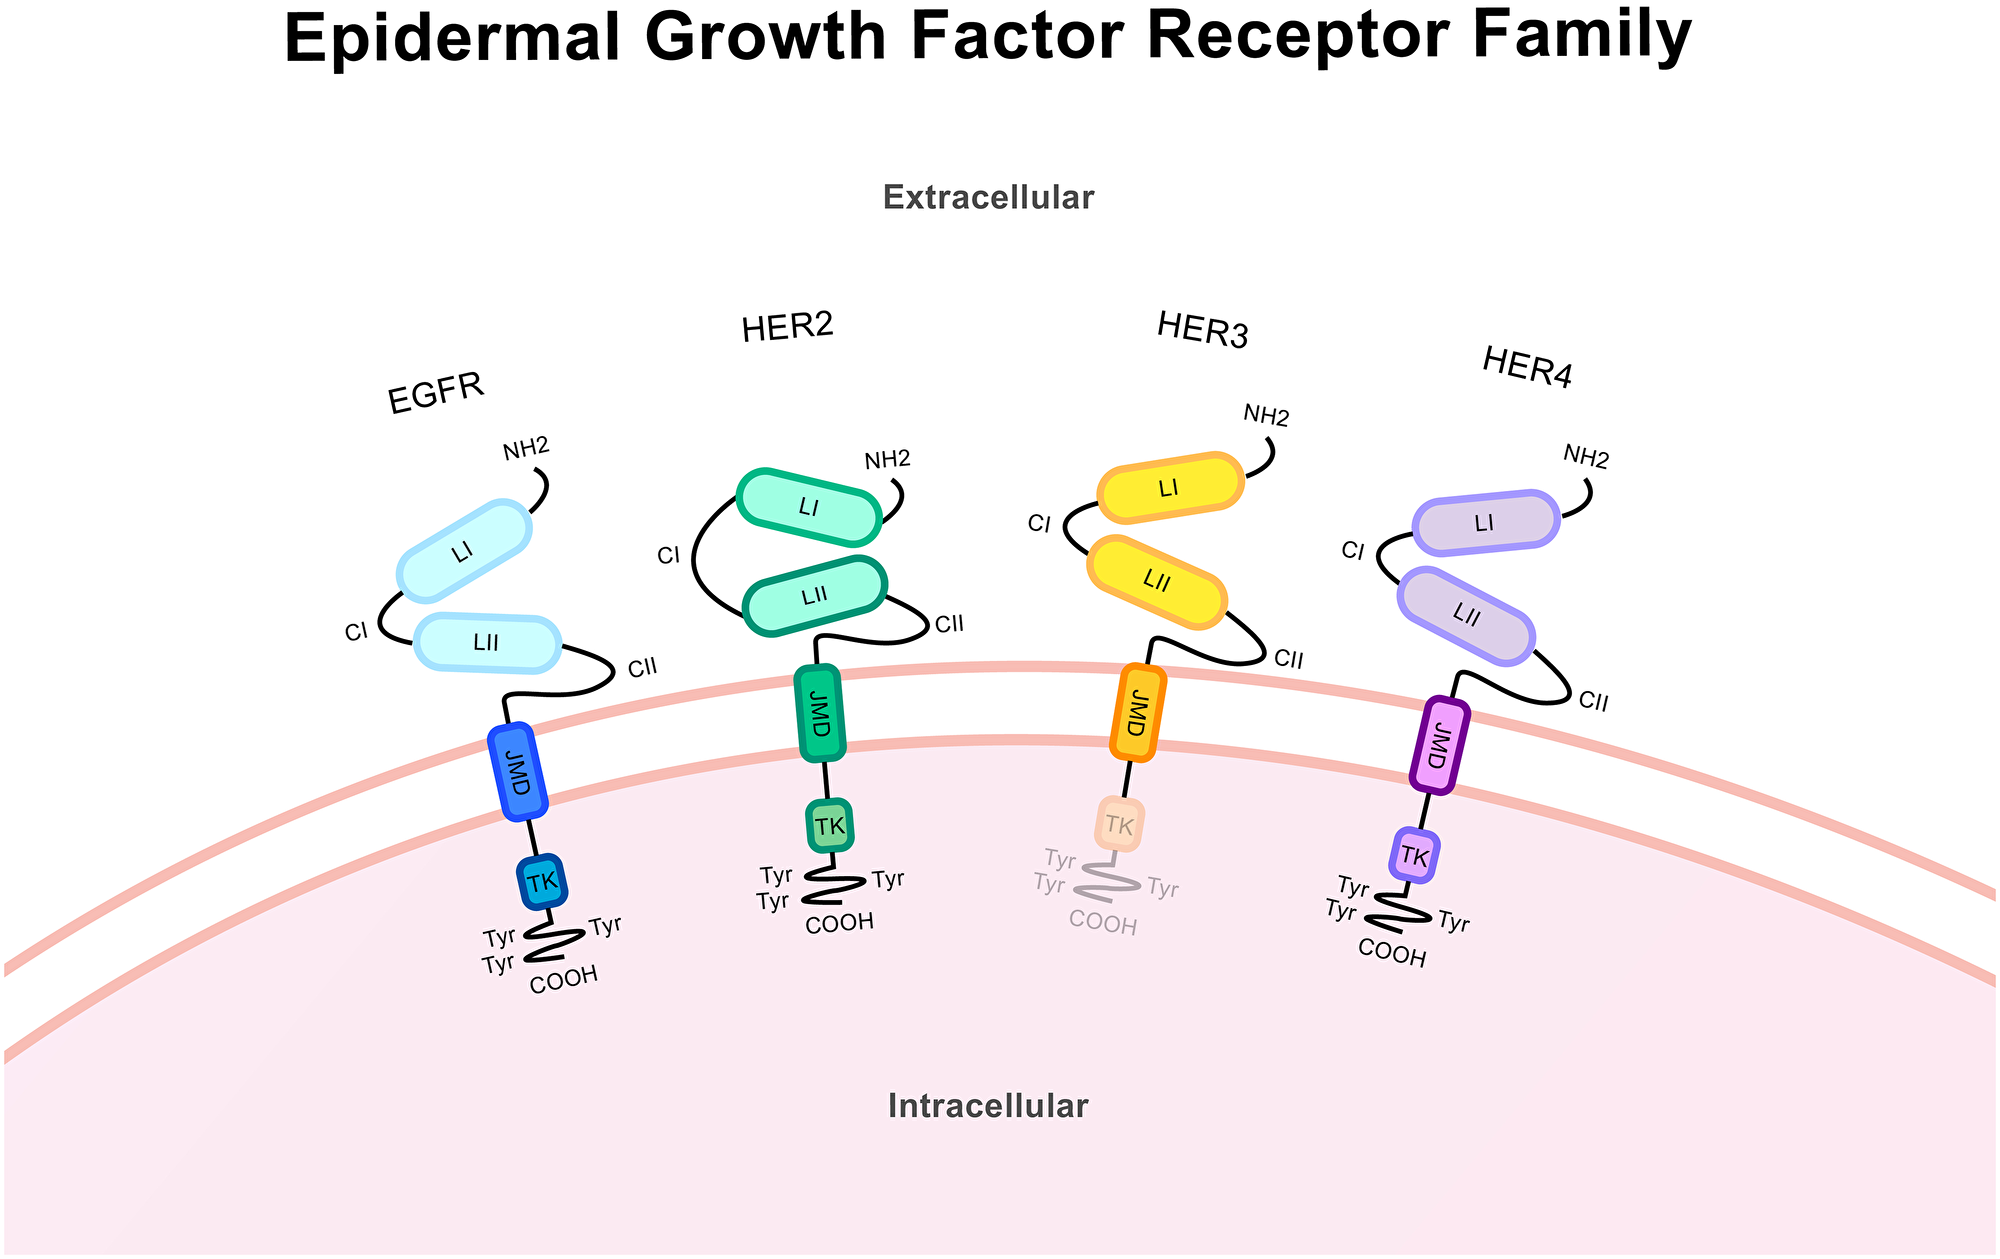 Protein structure of the epidermal growth factor receptor family.